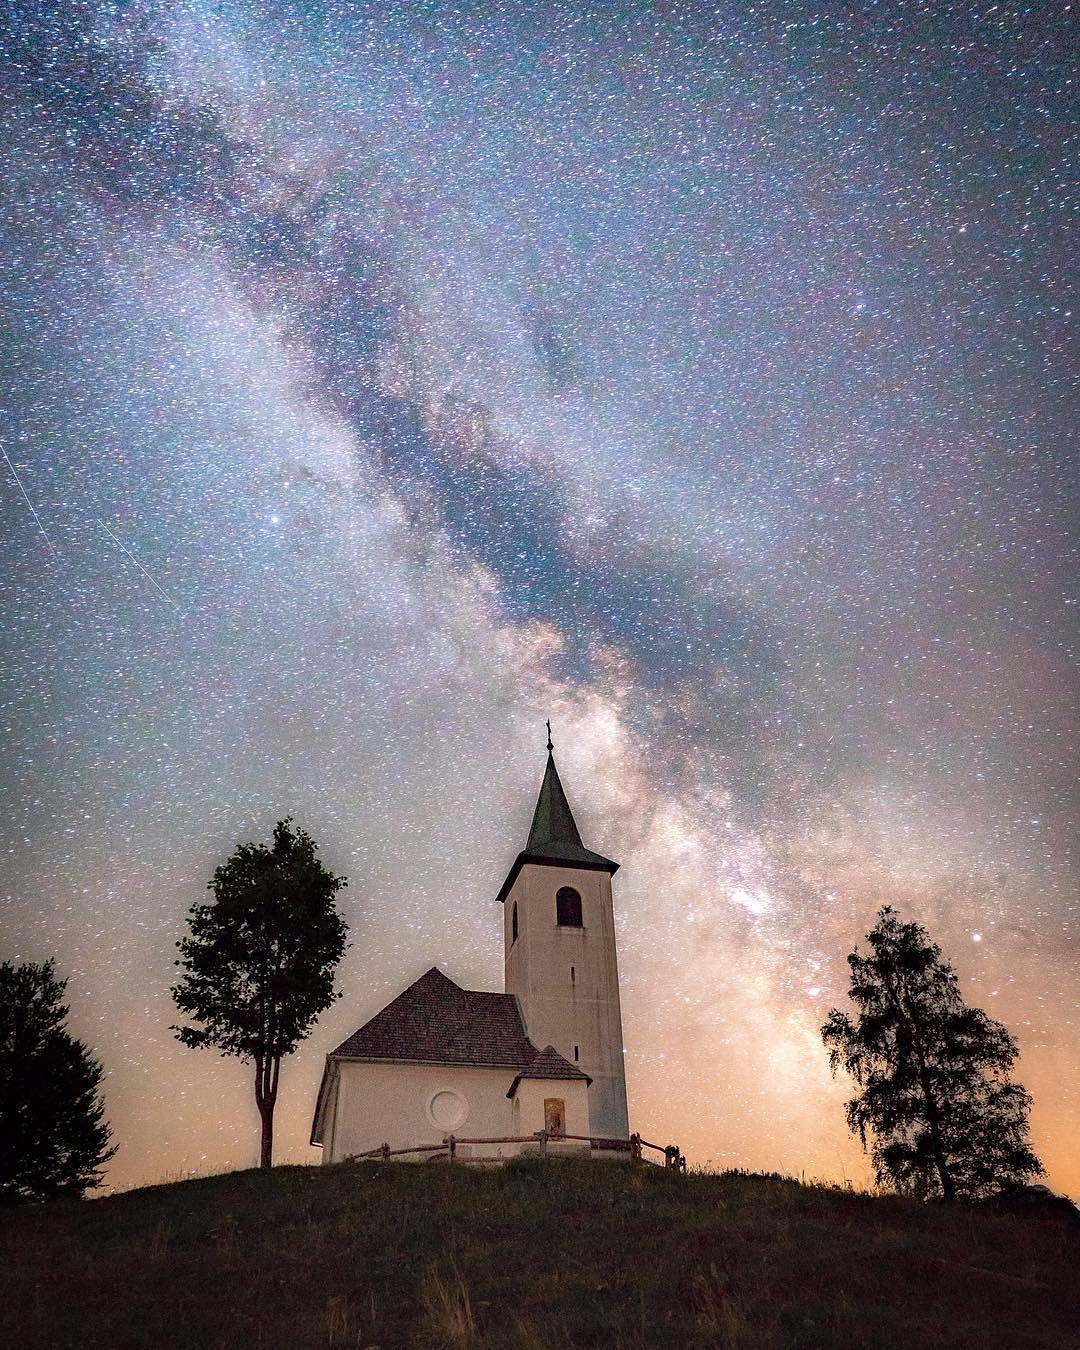 Good evening! Enjoy this moment of stars shining bright over the St. Holy Spirit church in Logar Valley.  Thanks @jamesjcruz for sharing your photo with #ifeelsLOVEnia.